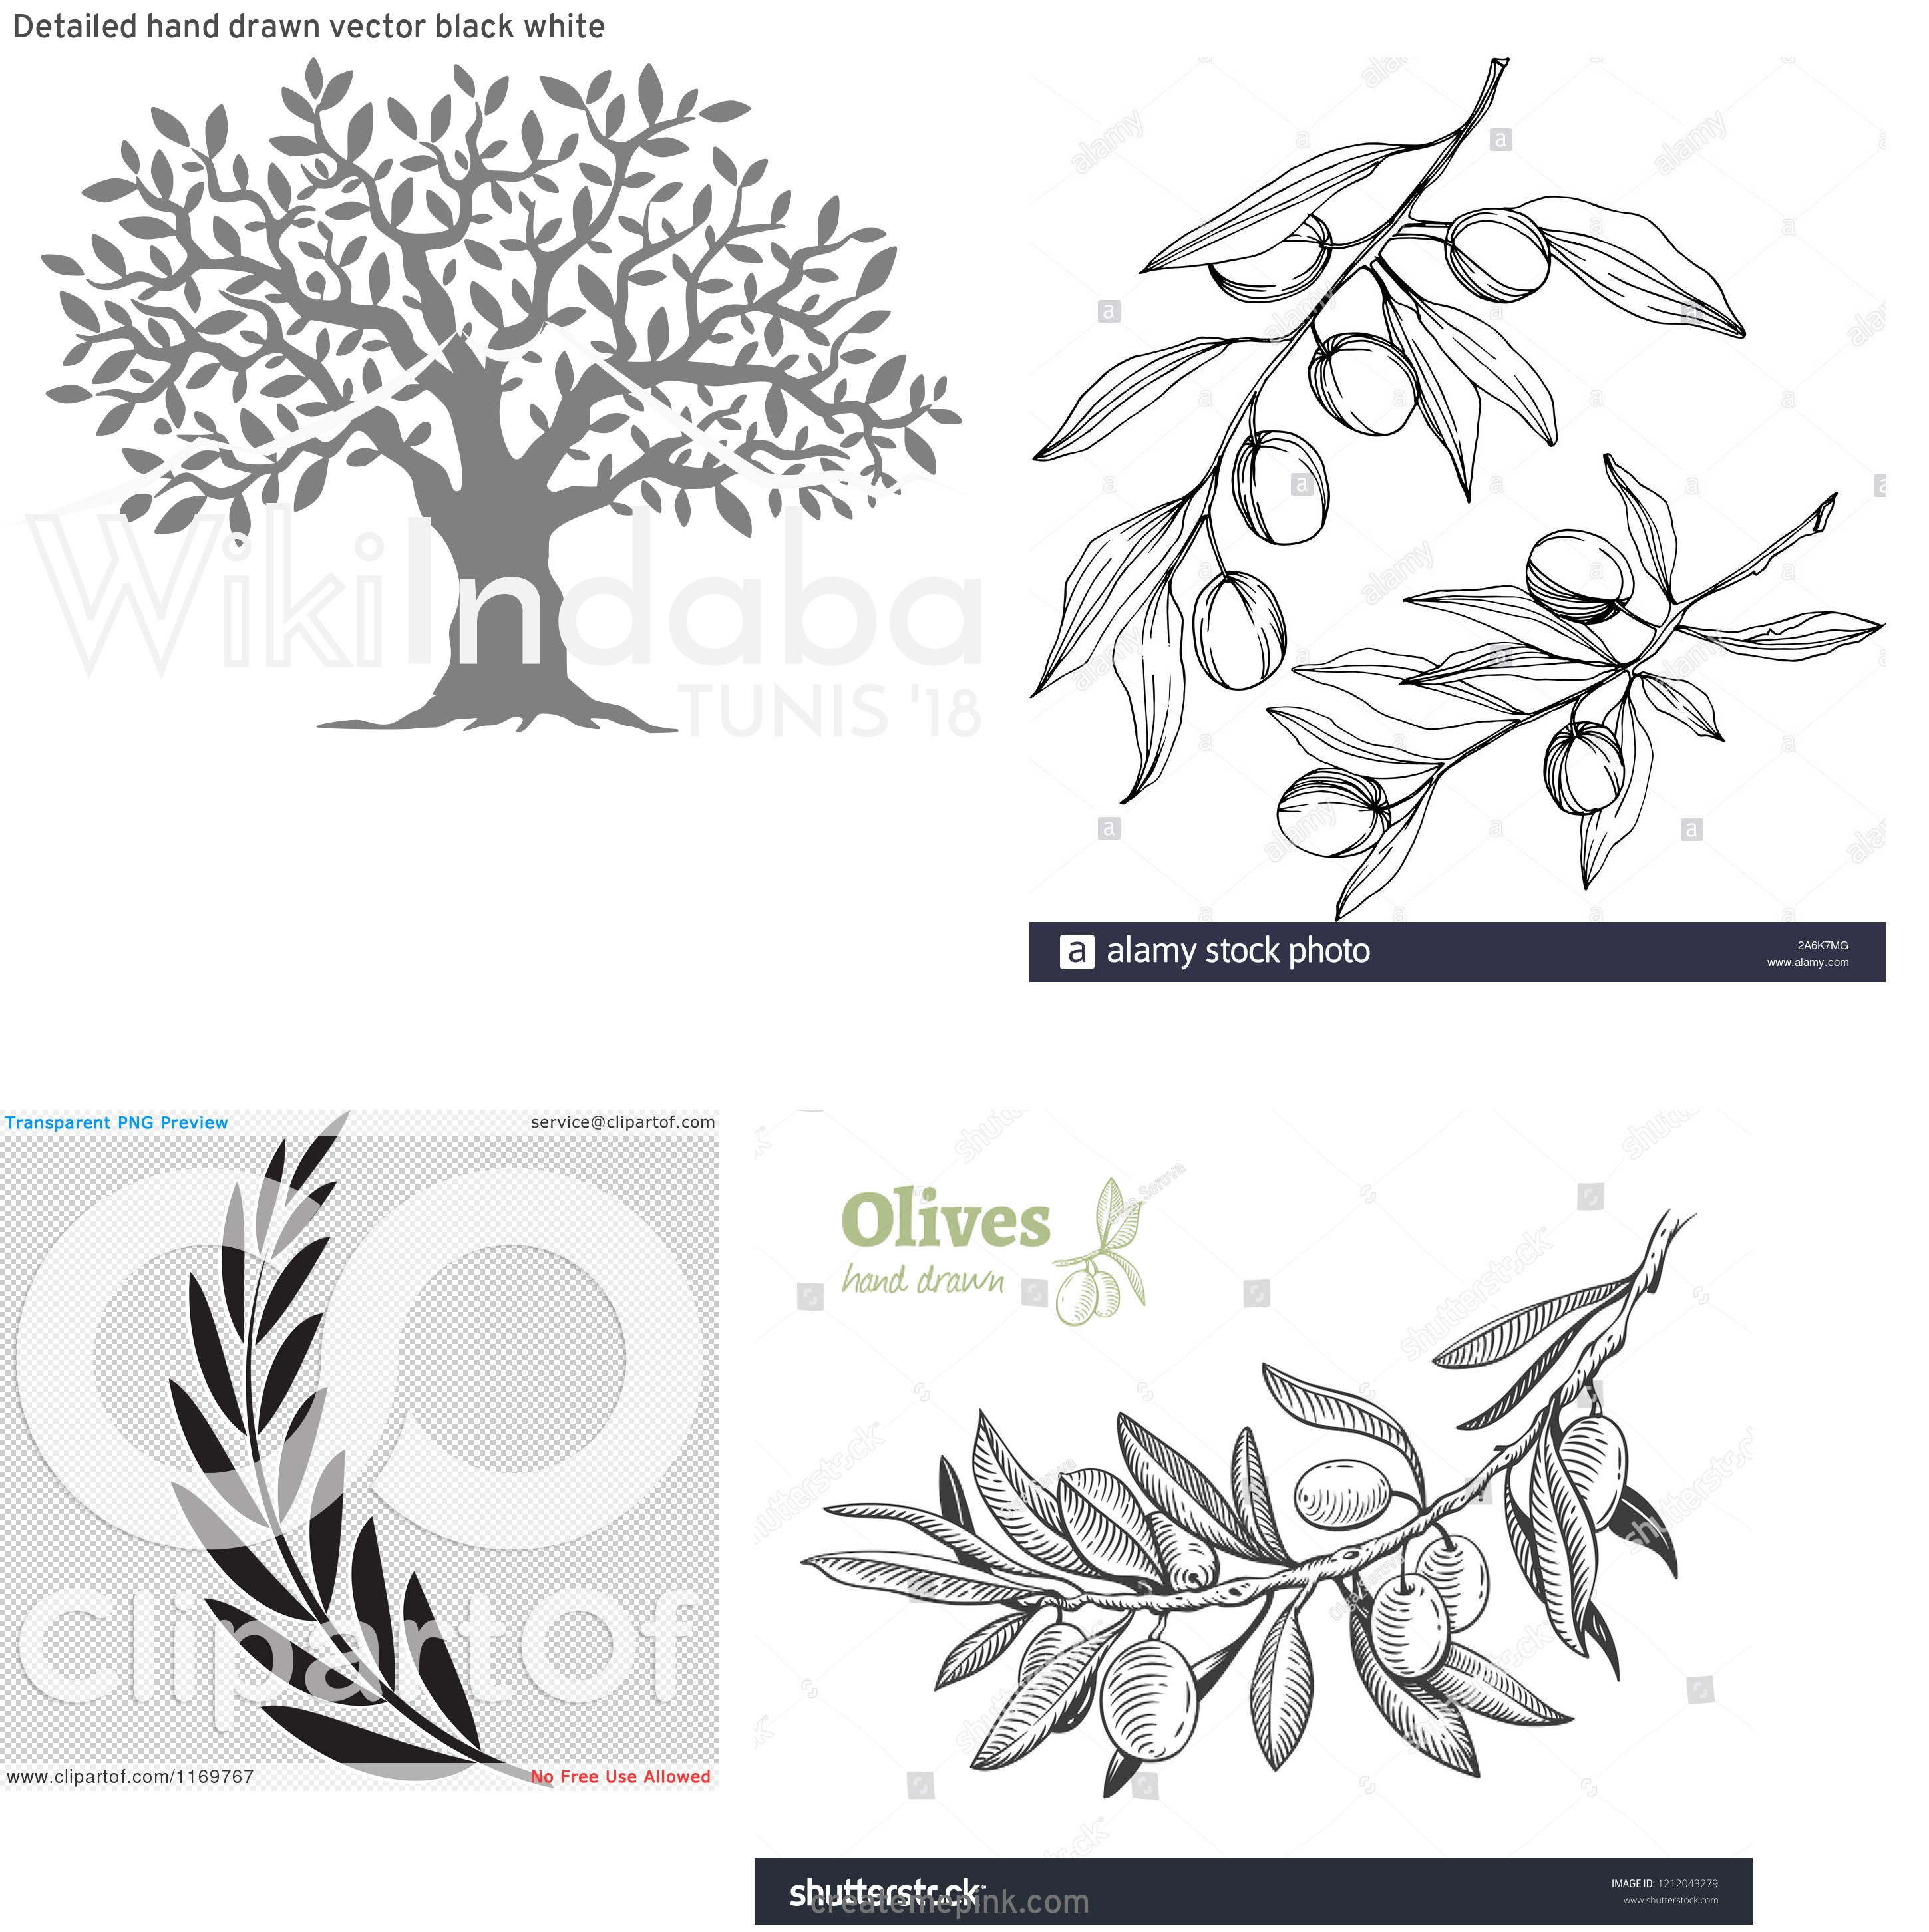 Olive Black And White Vector Leaves: Detailed Hand Drawn Vector Black White